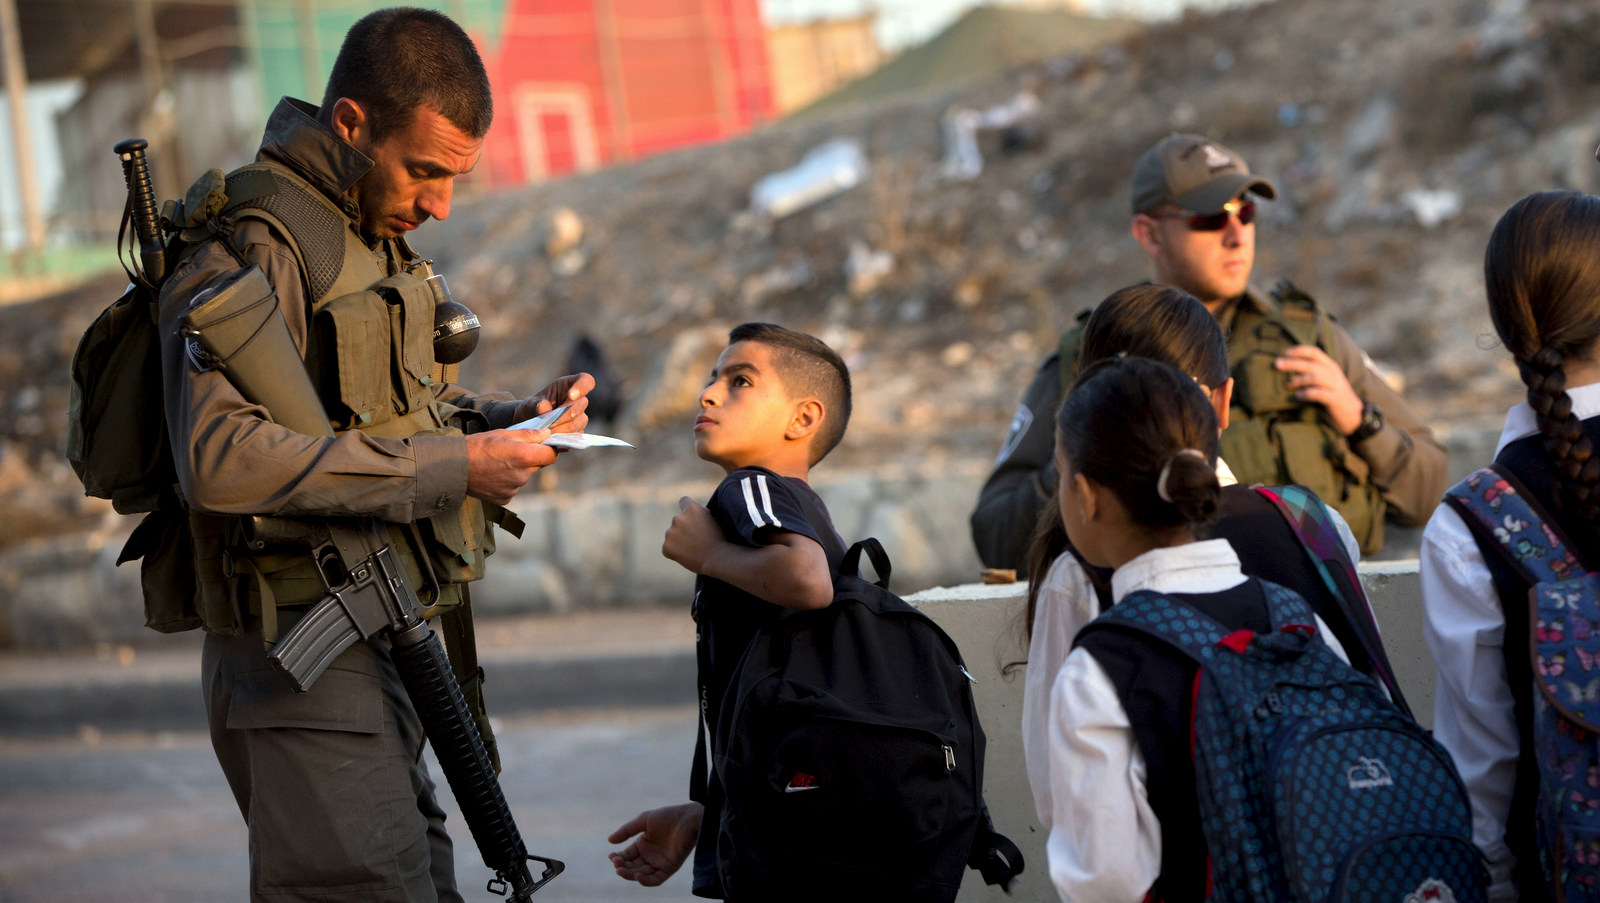 Israeli border police check Palestinian's identification cards at a checkpoint in Jerusalem, Thursday, Oct. 22, 2015.Palestinian right's groups are calling for people to remember the longstanding occupation that has again sparked recent violence. (AP Photo/Oded Balilty)